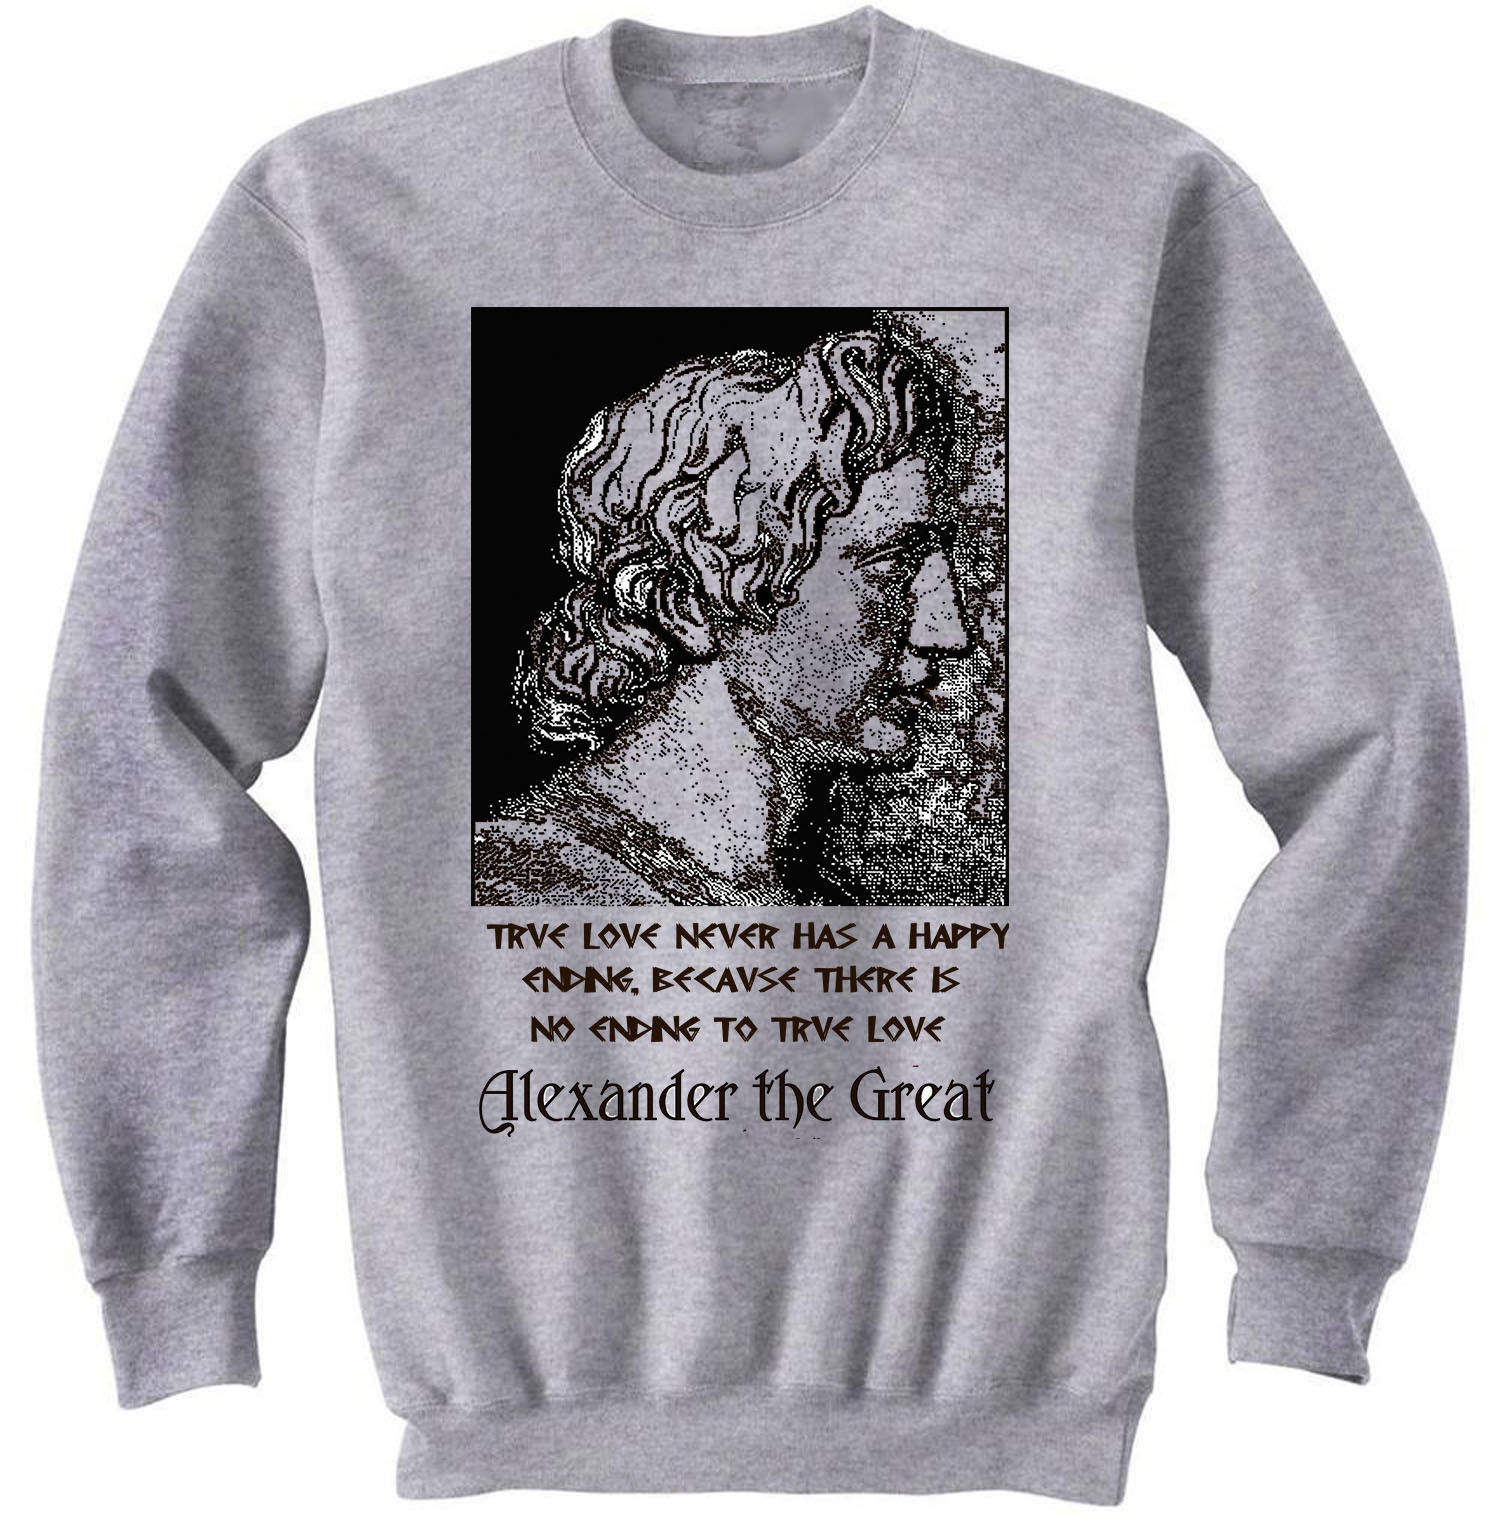 ALEXANDER THE GREAT TRUE LOVE QUOTE - NEW COTTON GREY SWEATSHIRT- ALL SIZES